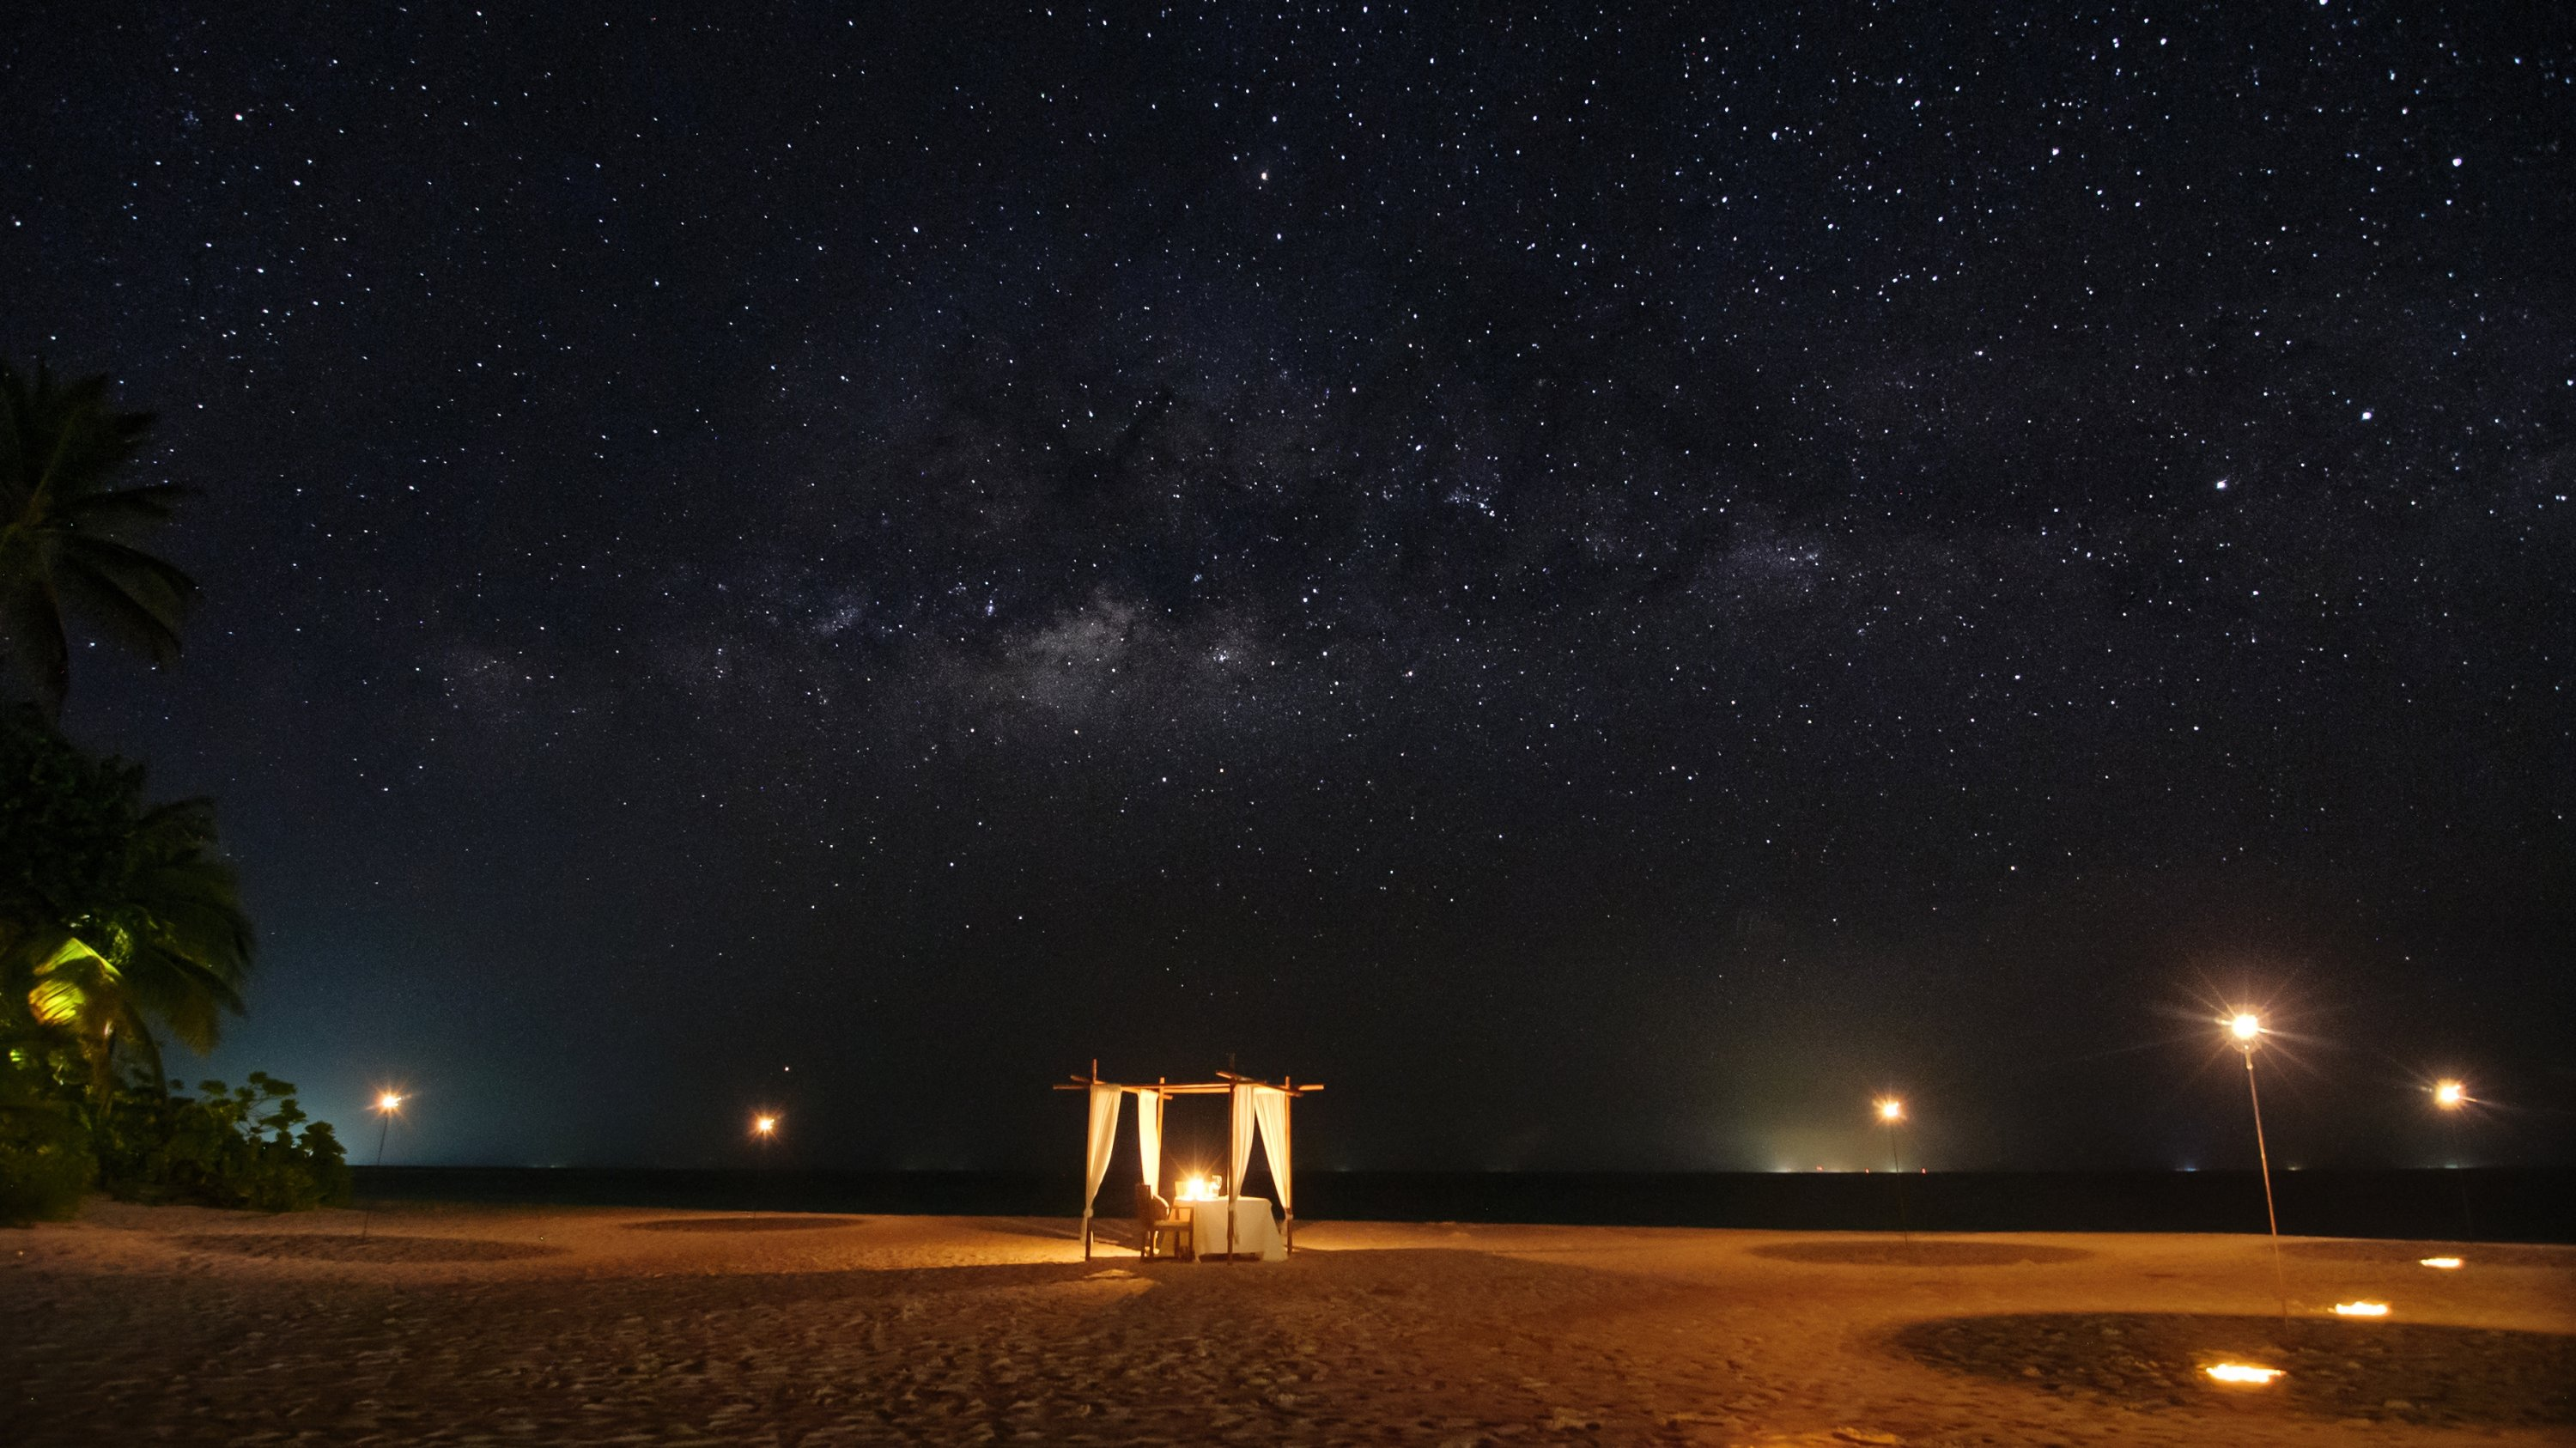 Low light pollution allows unparalleled stargazing opportunities in the Maldives. (Photo courtesy of Mirihi Maldives)